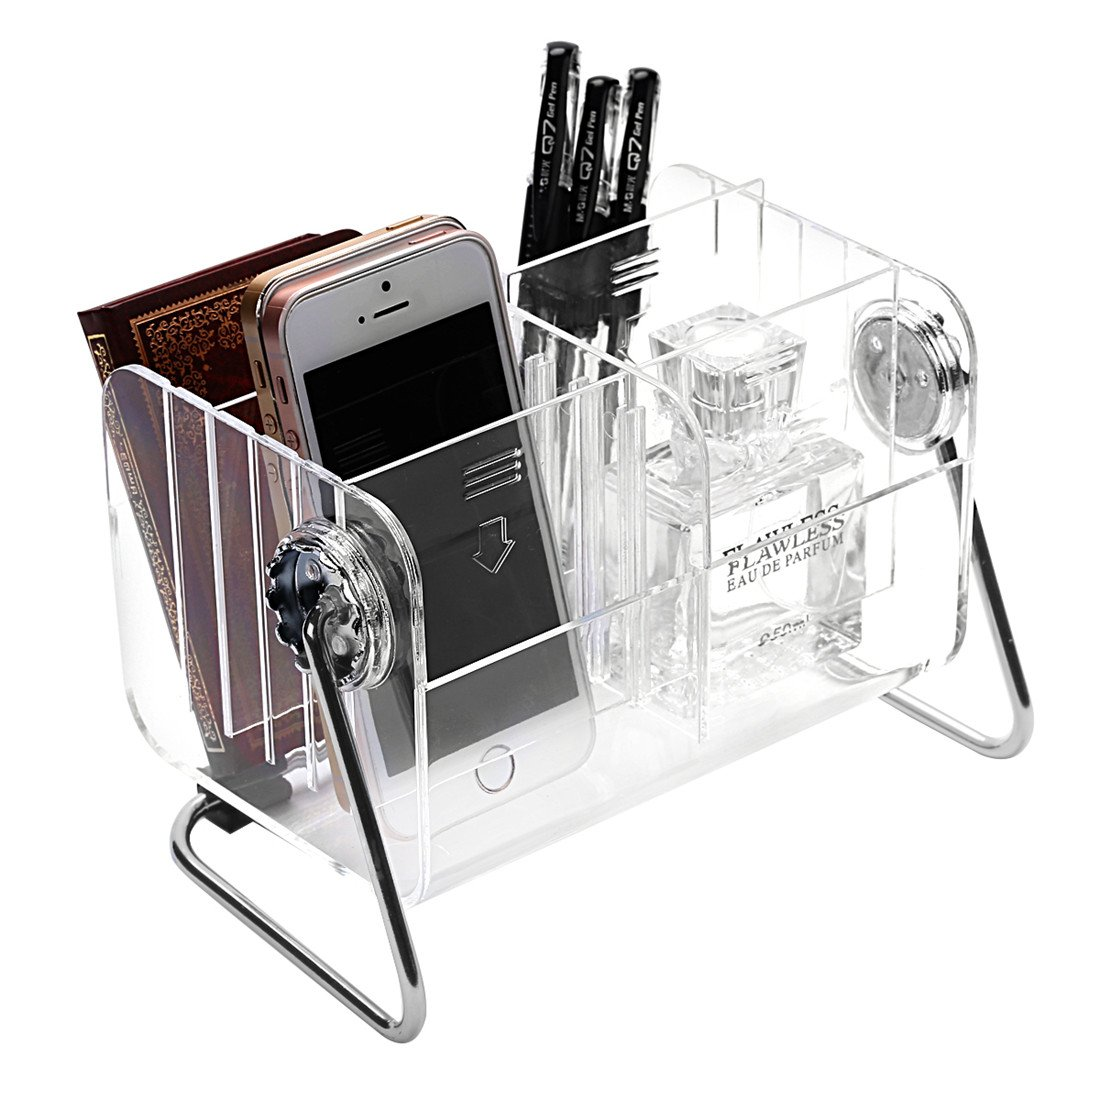 Ivosmart Clear Desktop Acrylic TV Remote Control Mobile Phone Storage Holder Organizer Caddy